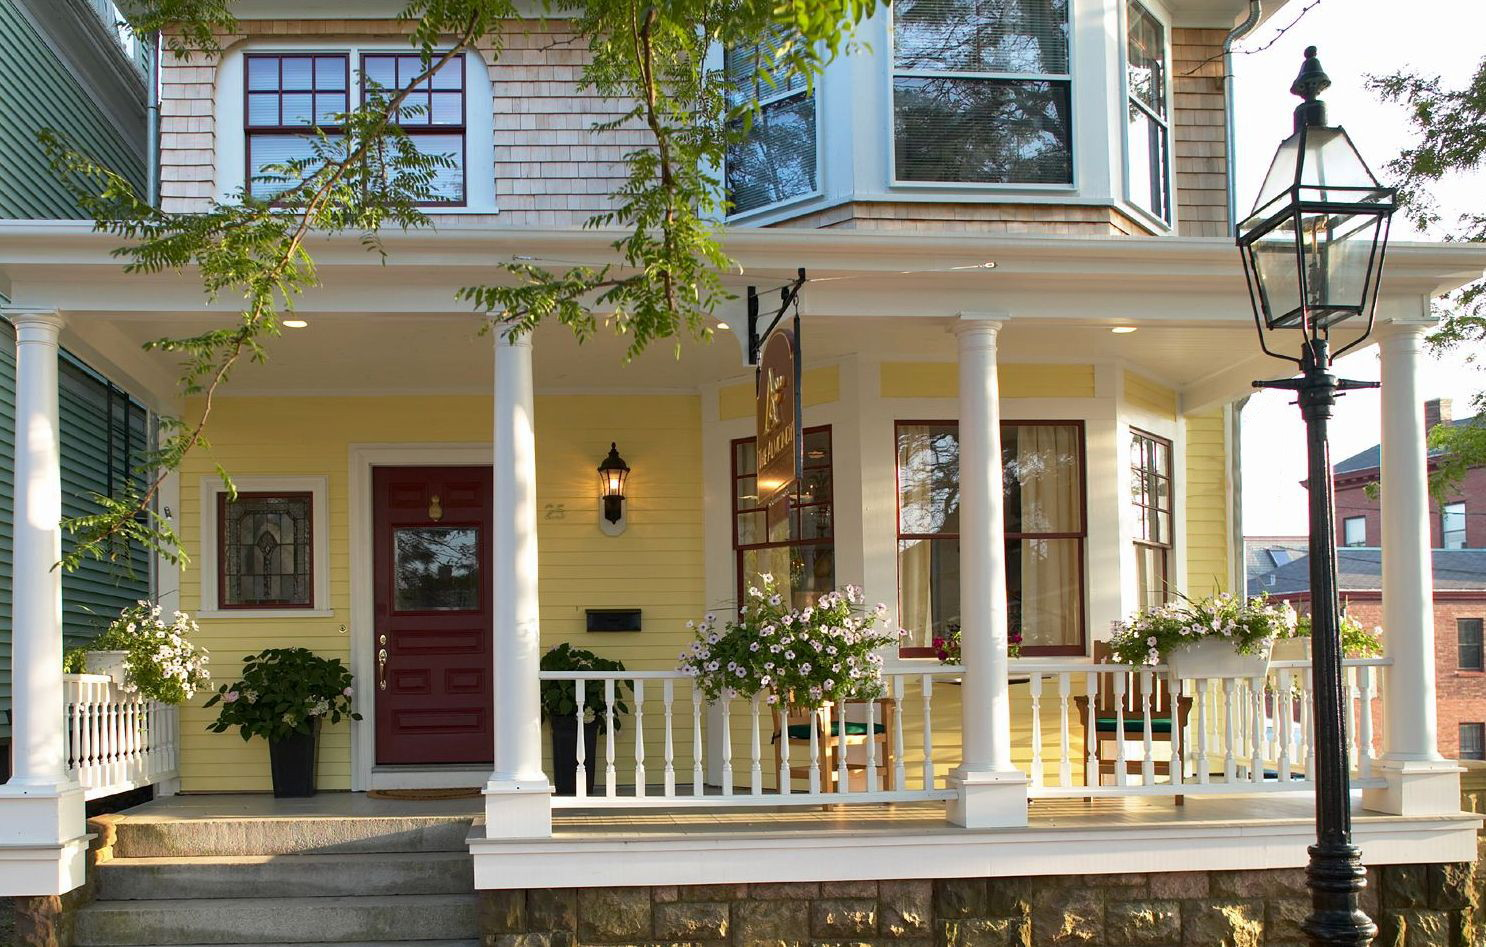 Bed and Breakfast for Sale at The Almondy Inn 25 Pelham Street Newport, Rhode Island 02840 United States